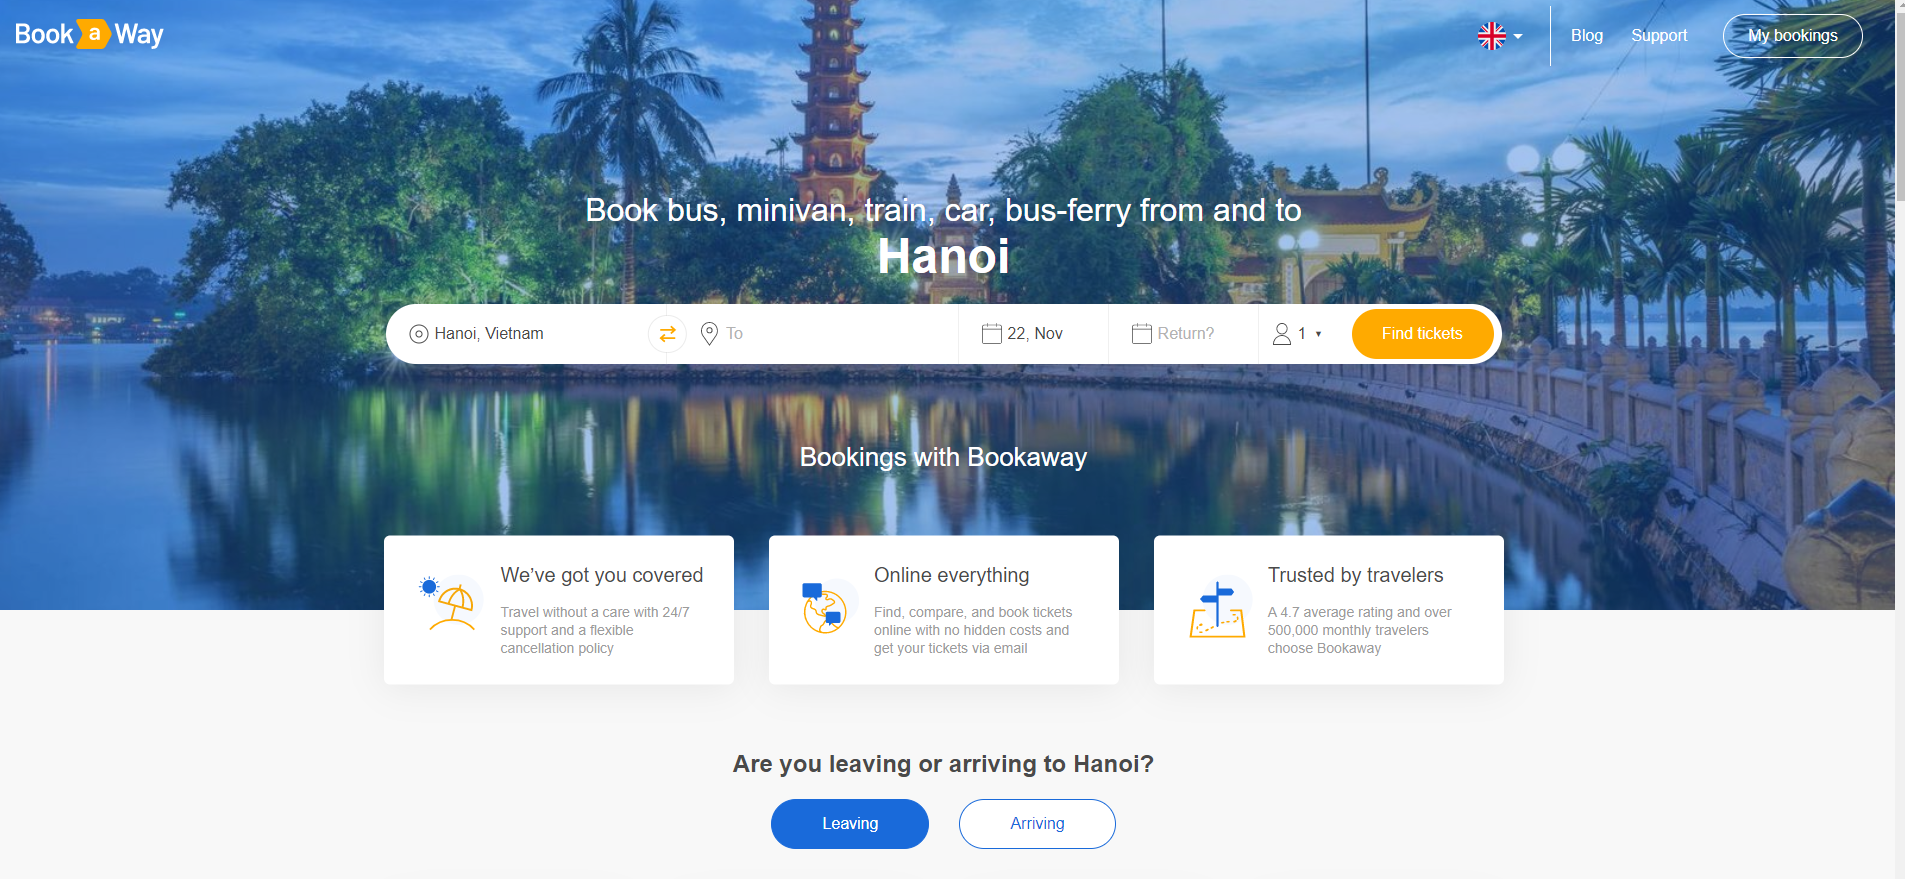 """Book a trip to and from Hanoi and enjoy 5% discount by entering promo code """"3duniversal5"""" at the payment page! Click here to book"""